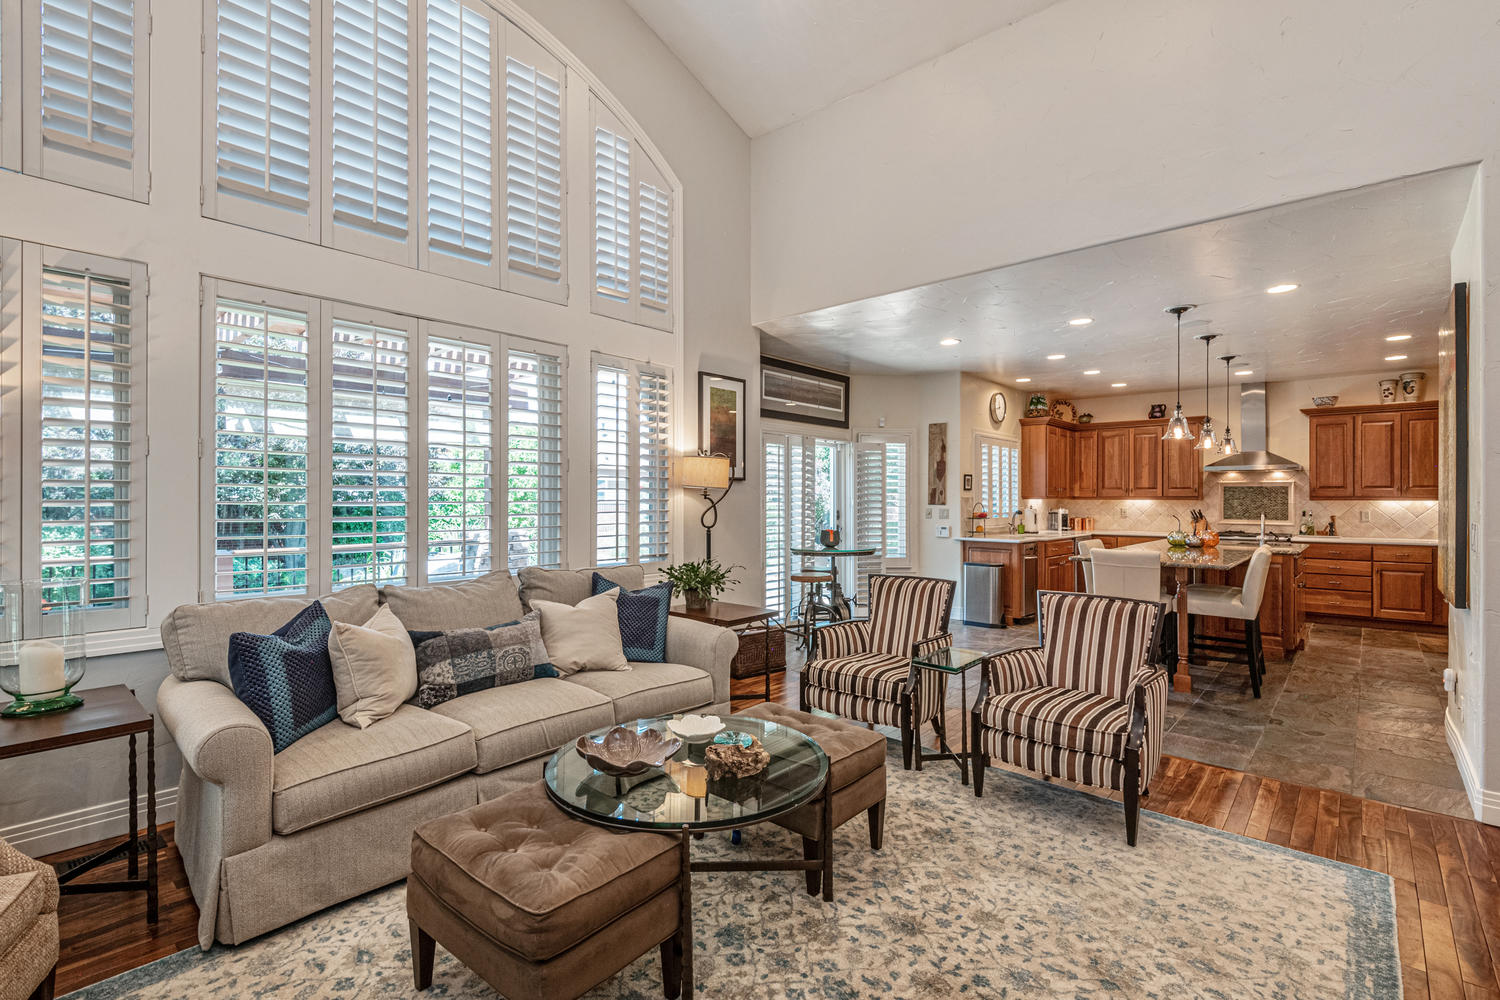 Plantation Shutters Throughout this Home